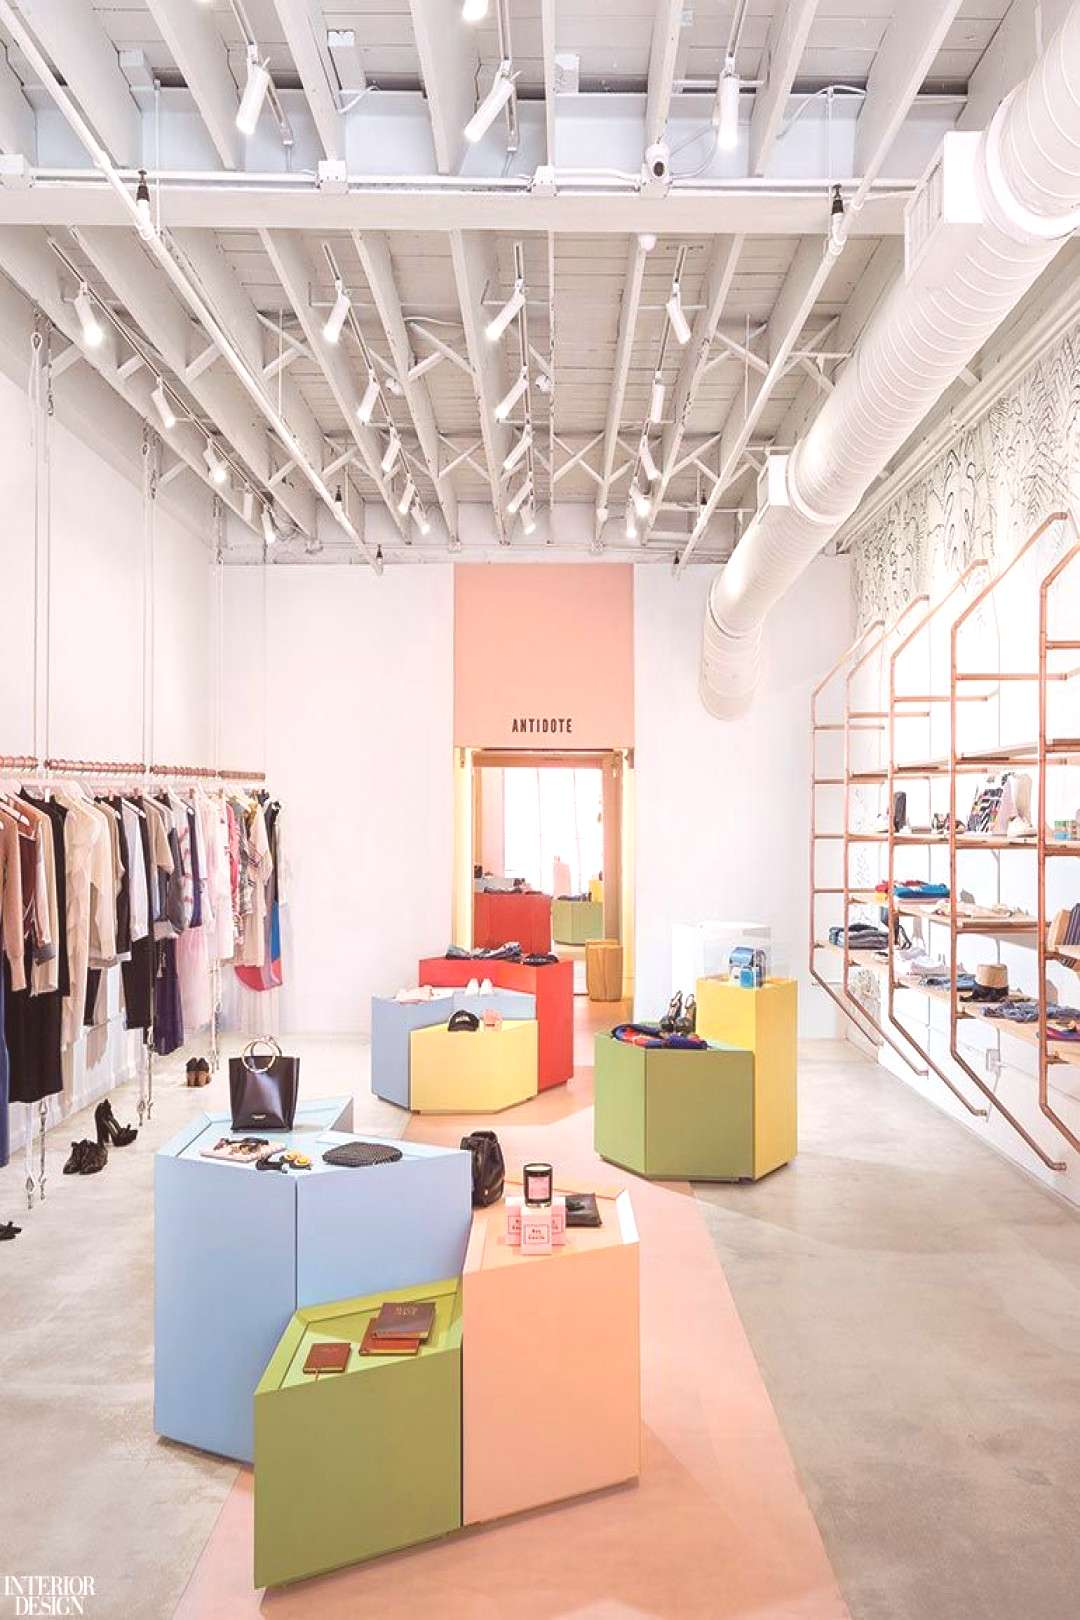 Antidote boutique by Atelier de Yavorsky. Lacquered MDF display cubes add a visual dynamic to the